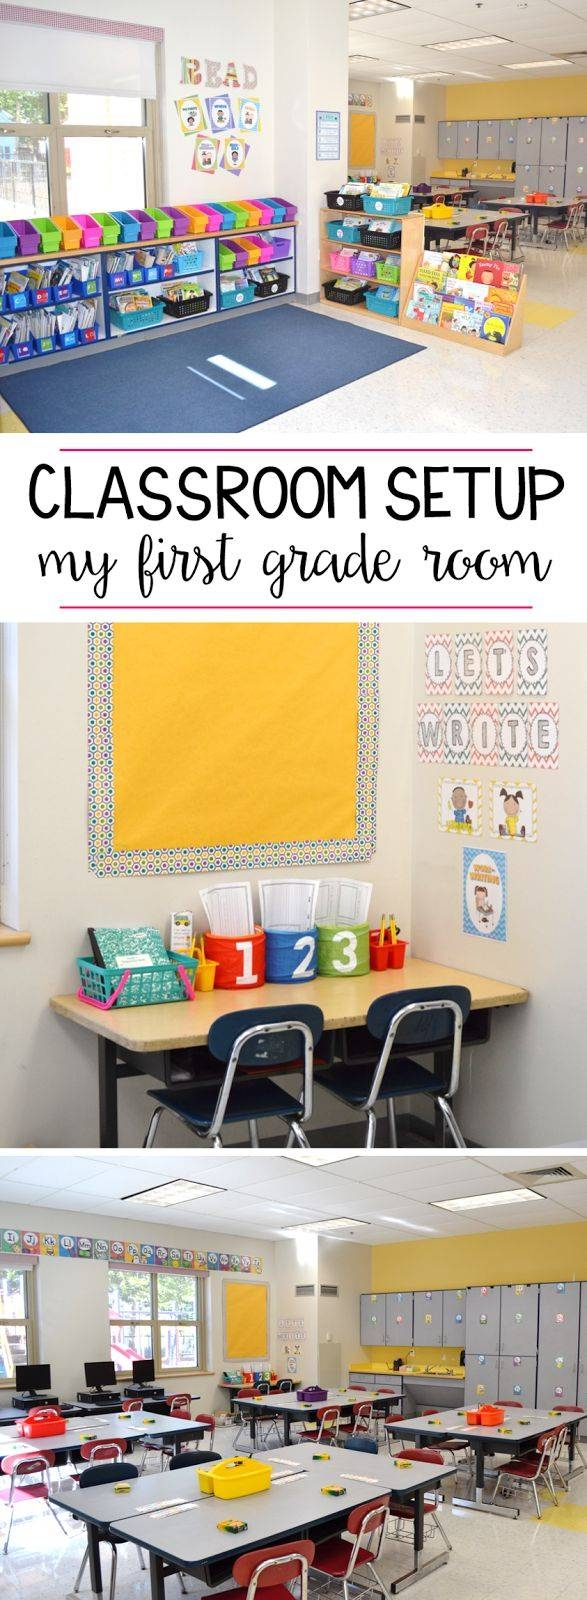 Gallery of Preschool Classroom Wall Decals (View 10 of 30 Photos)